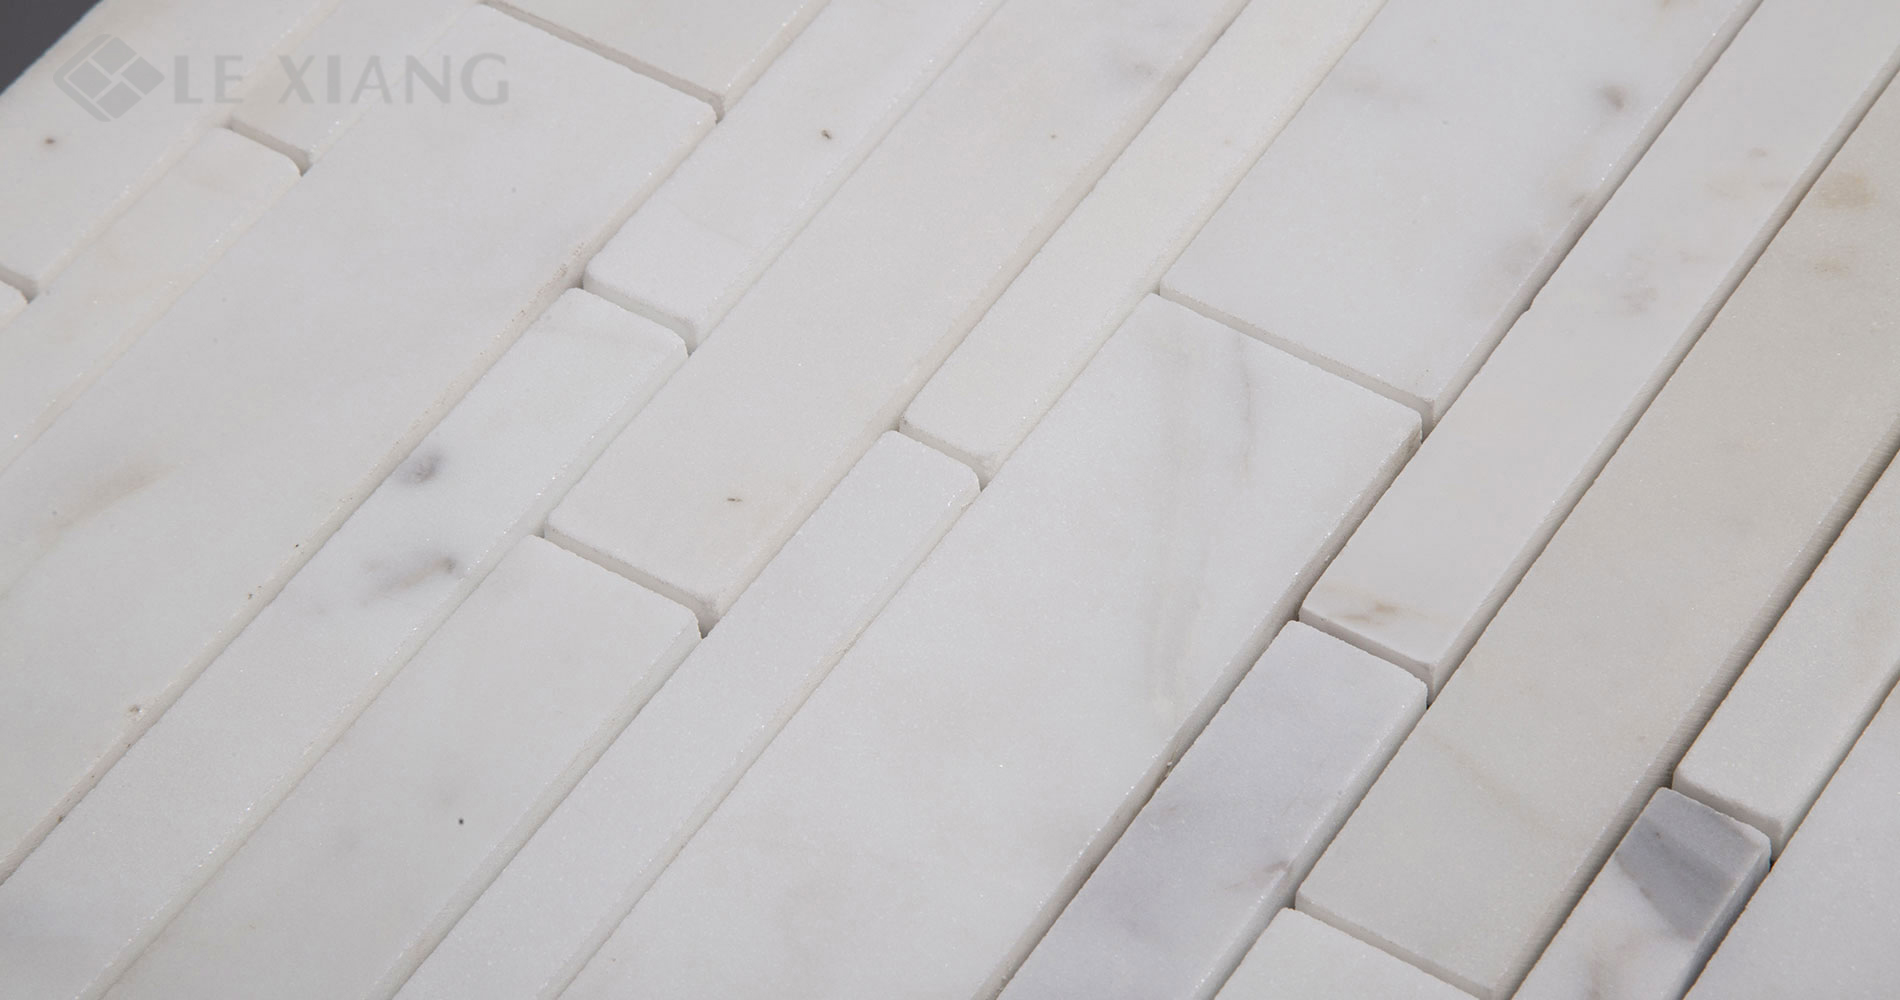 Marble-Strip-Mosaic-Tile-For-Kitchen-Backsplash-And-Bathroom-Floor-Backsplash-Wall-3-5